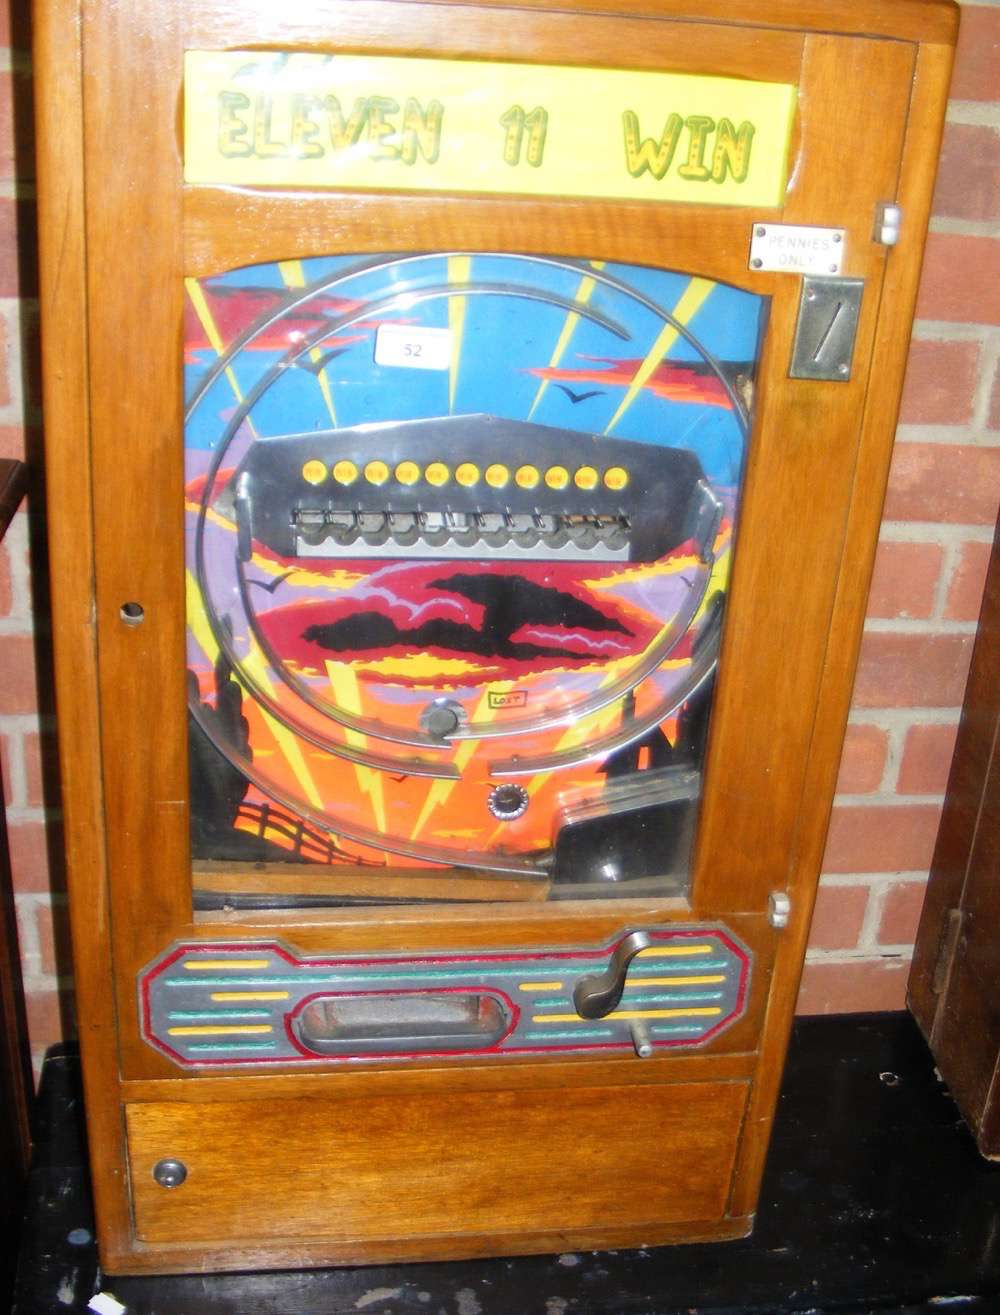 "Lot 52 - A penny in the slot ""Eleven 11 Win"" pinball type amusement arcade machine"